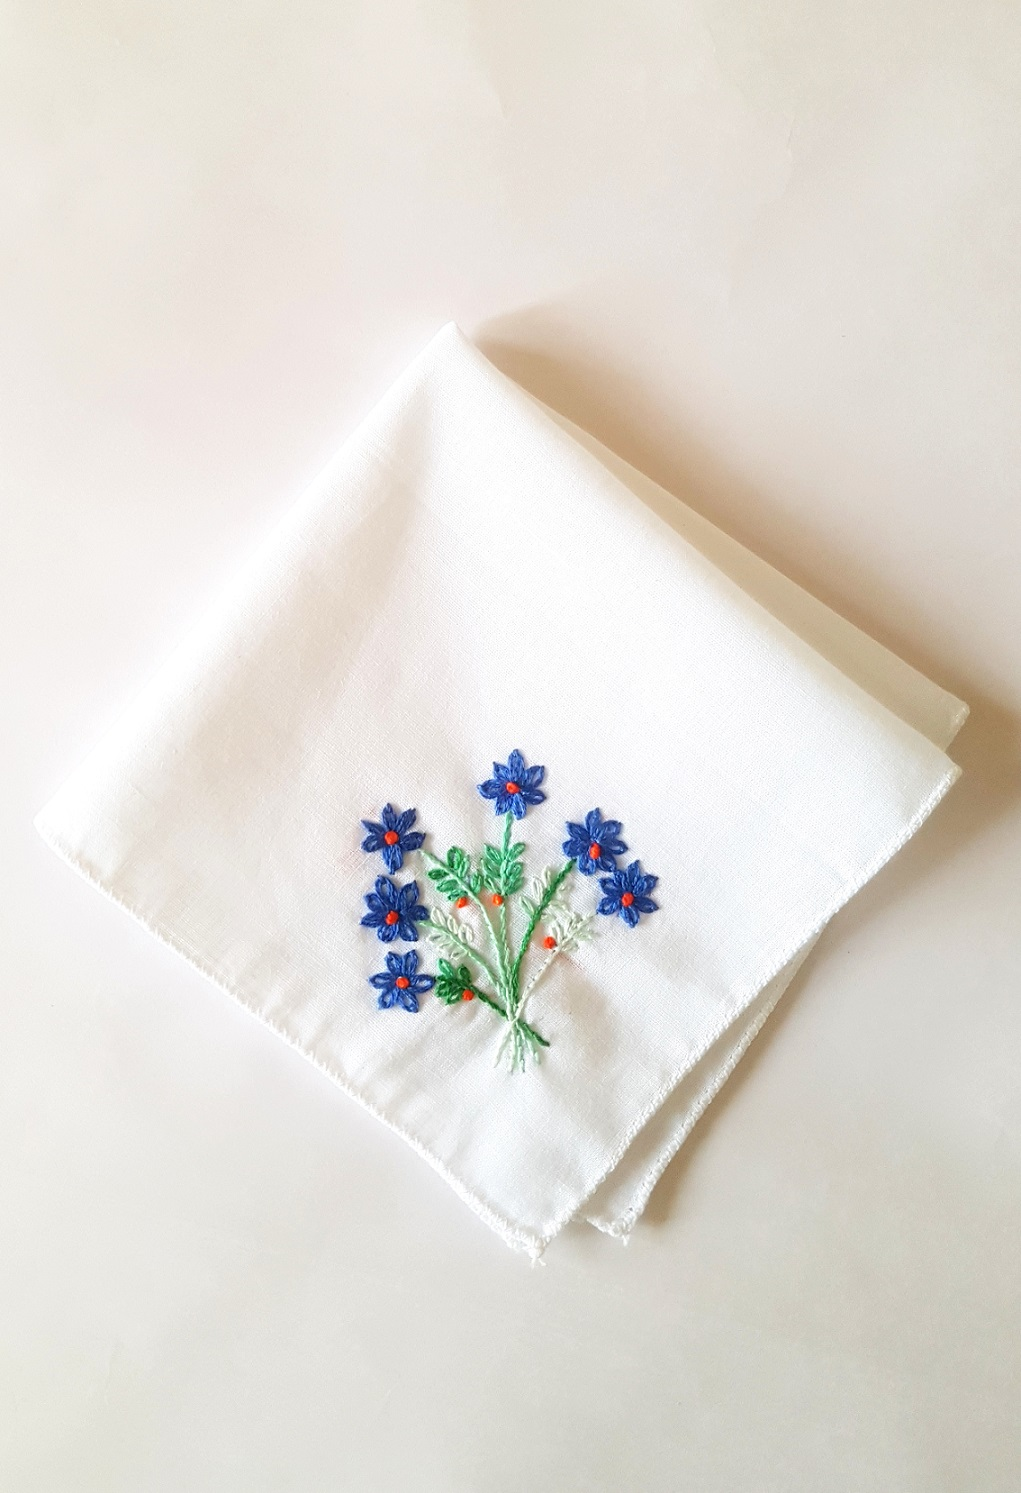 Blue Florals Embroidered on Cotton Kerchiefs